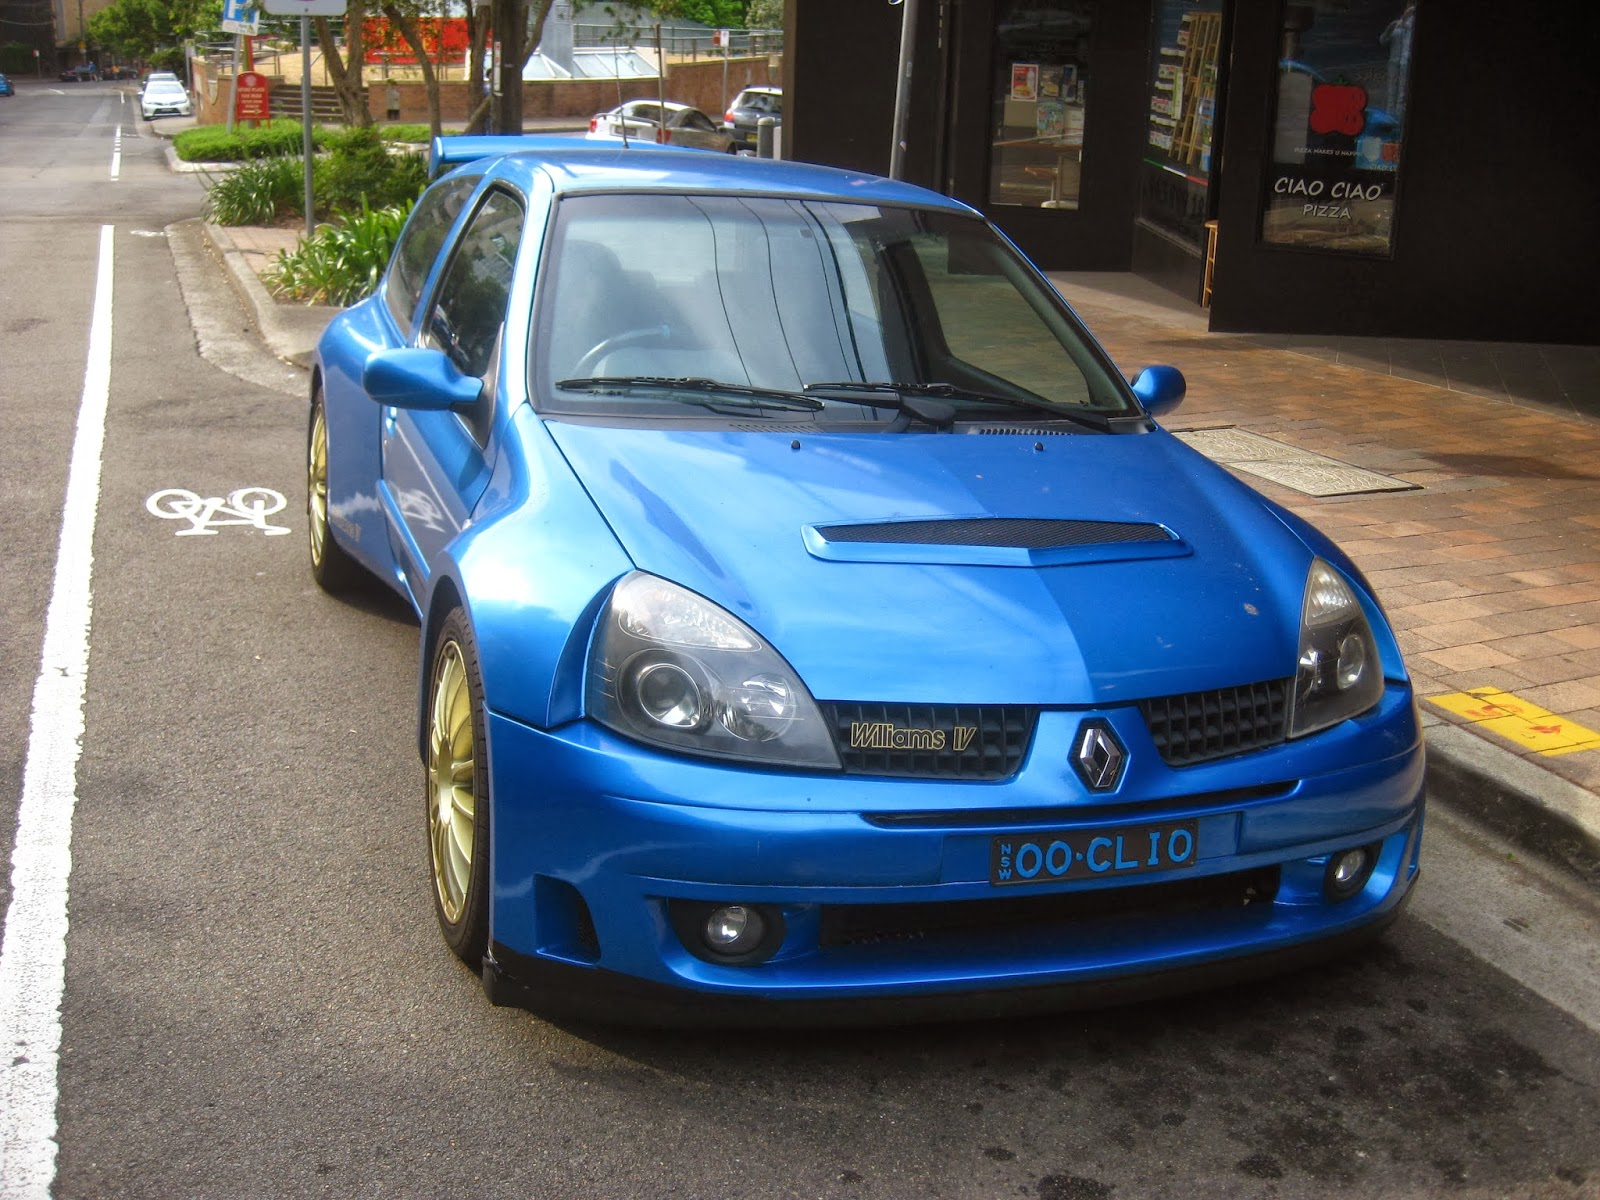 aussie old parked cars 2013 clio renault sport williams iv. Black Bedroom Furniture Sets. Home Design Ideas